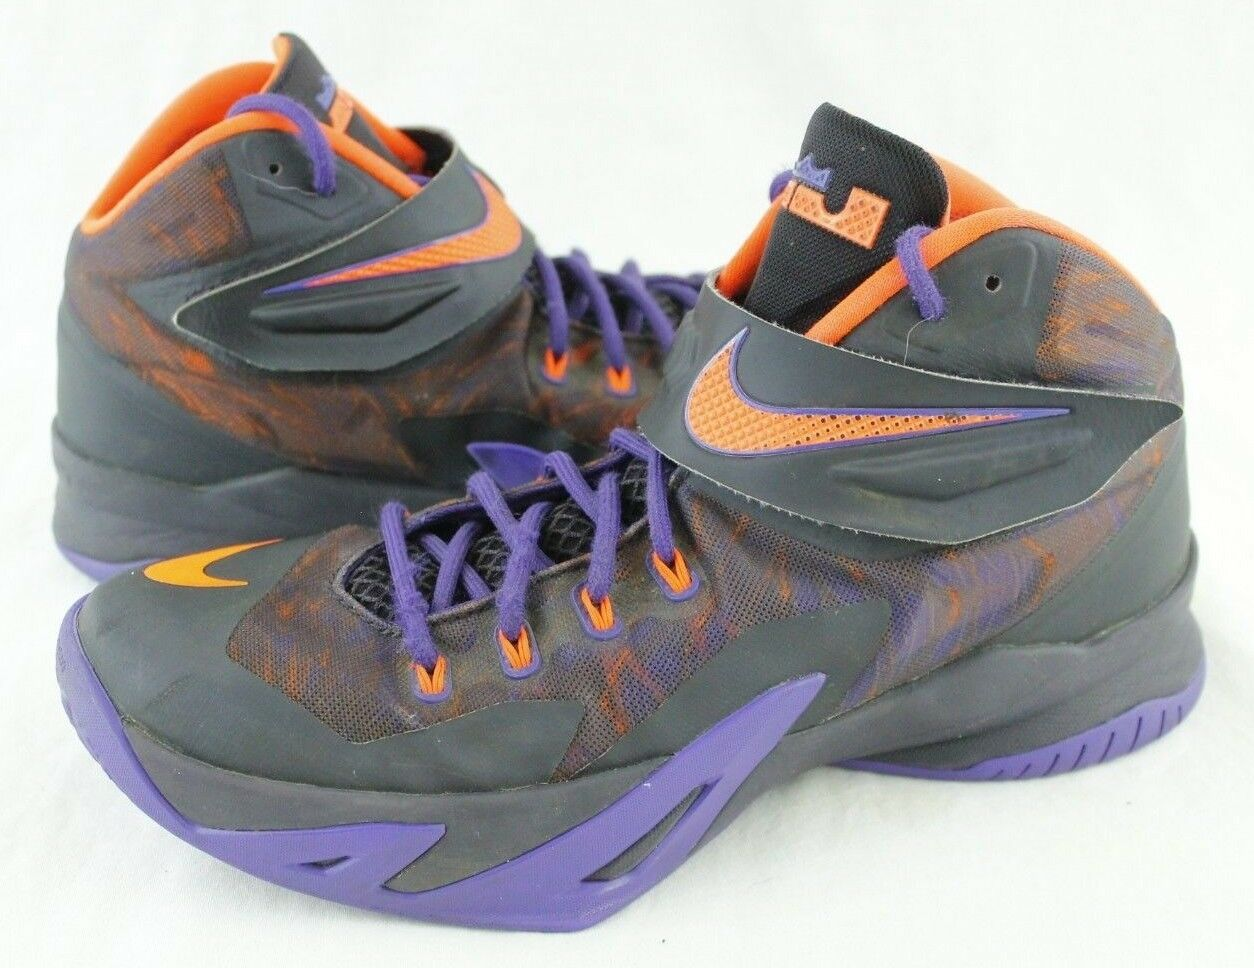 NIKE ZOOM SOLDIER VIII 8 PRM Basketball Shoes Mens 9 Purple Orange Accents Wild casual shoes